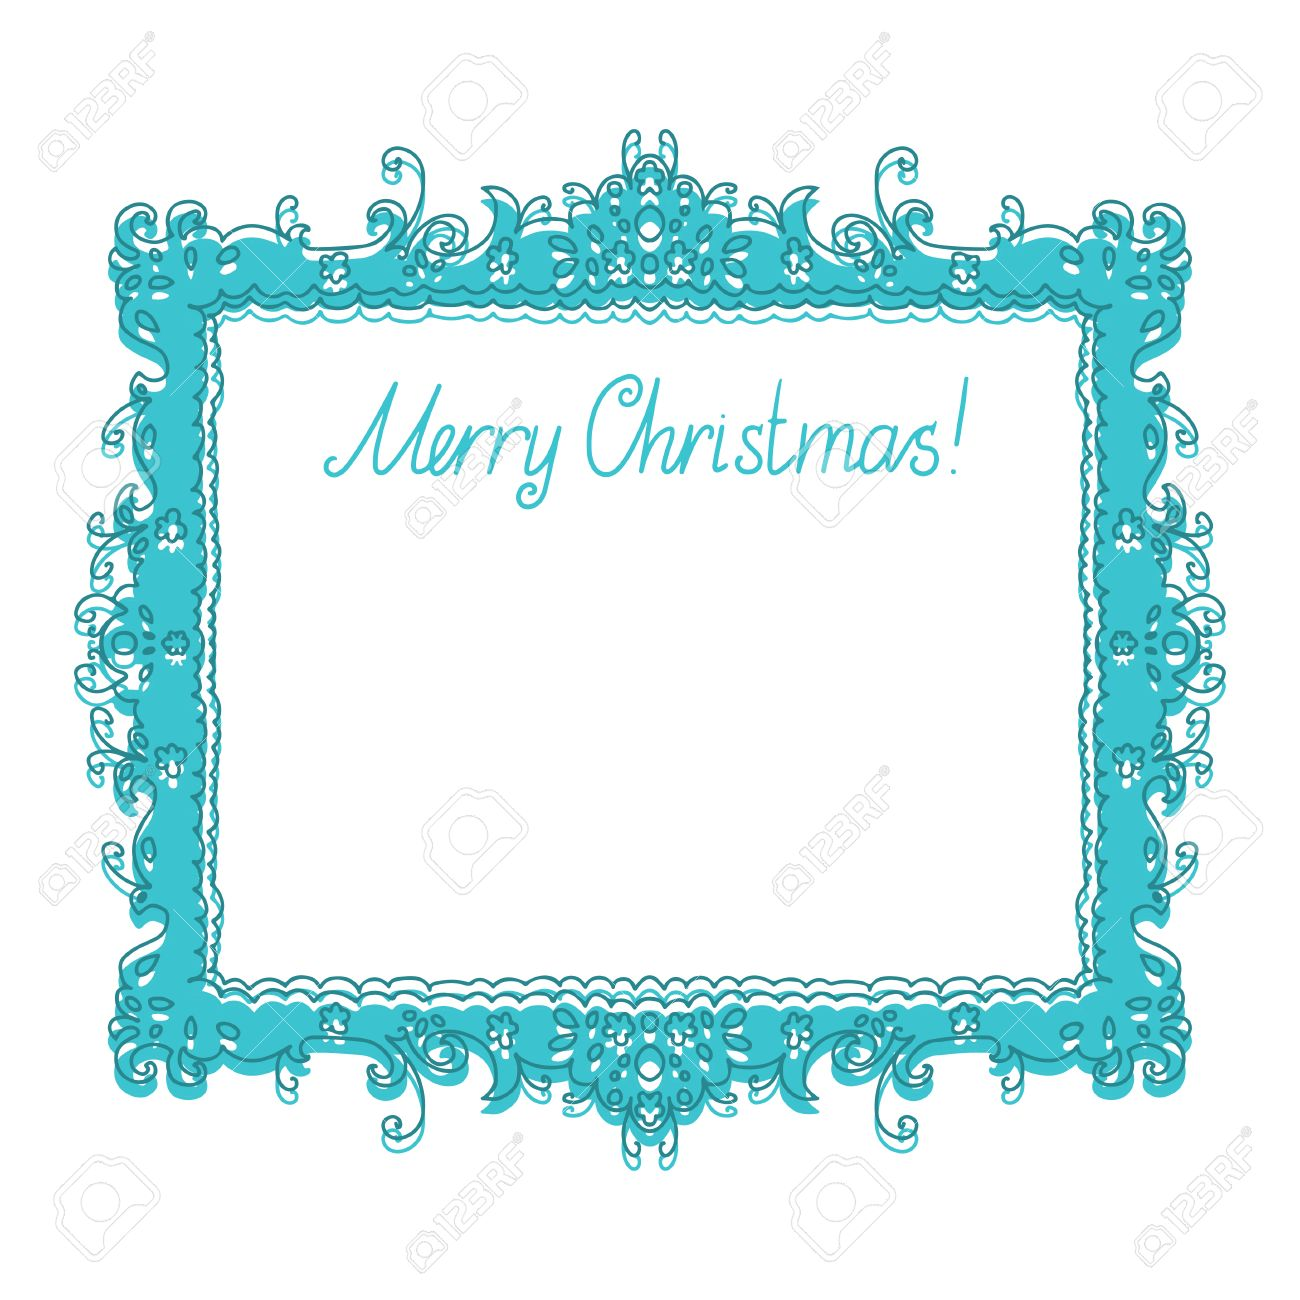 Holiday New Year and Christmas background with frame, flowers and text Merry Christmas - vector Stock Vector - 22297342